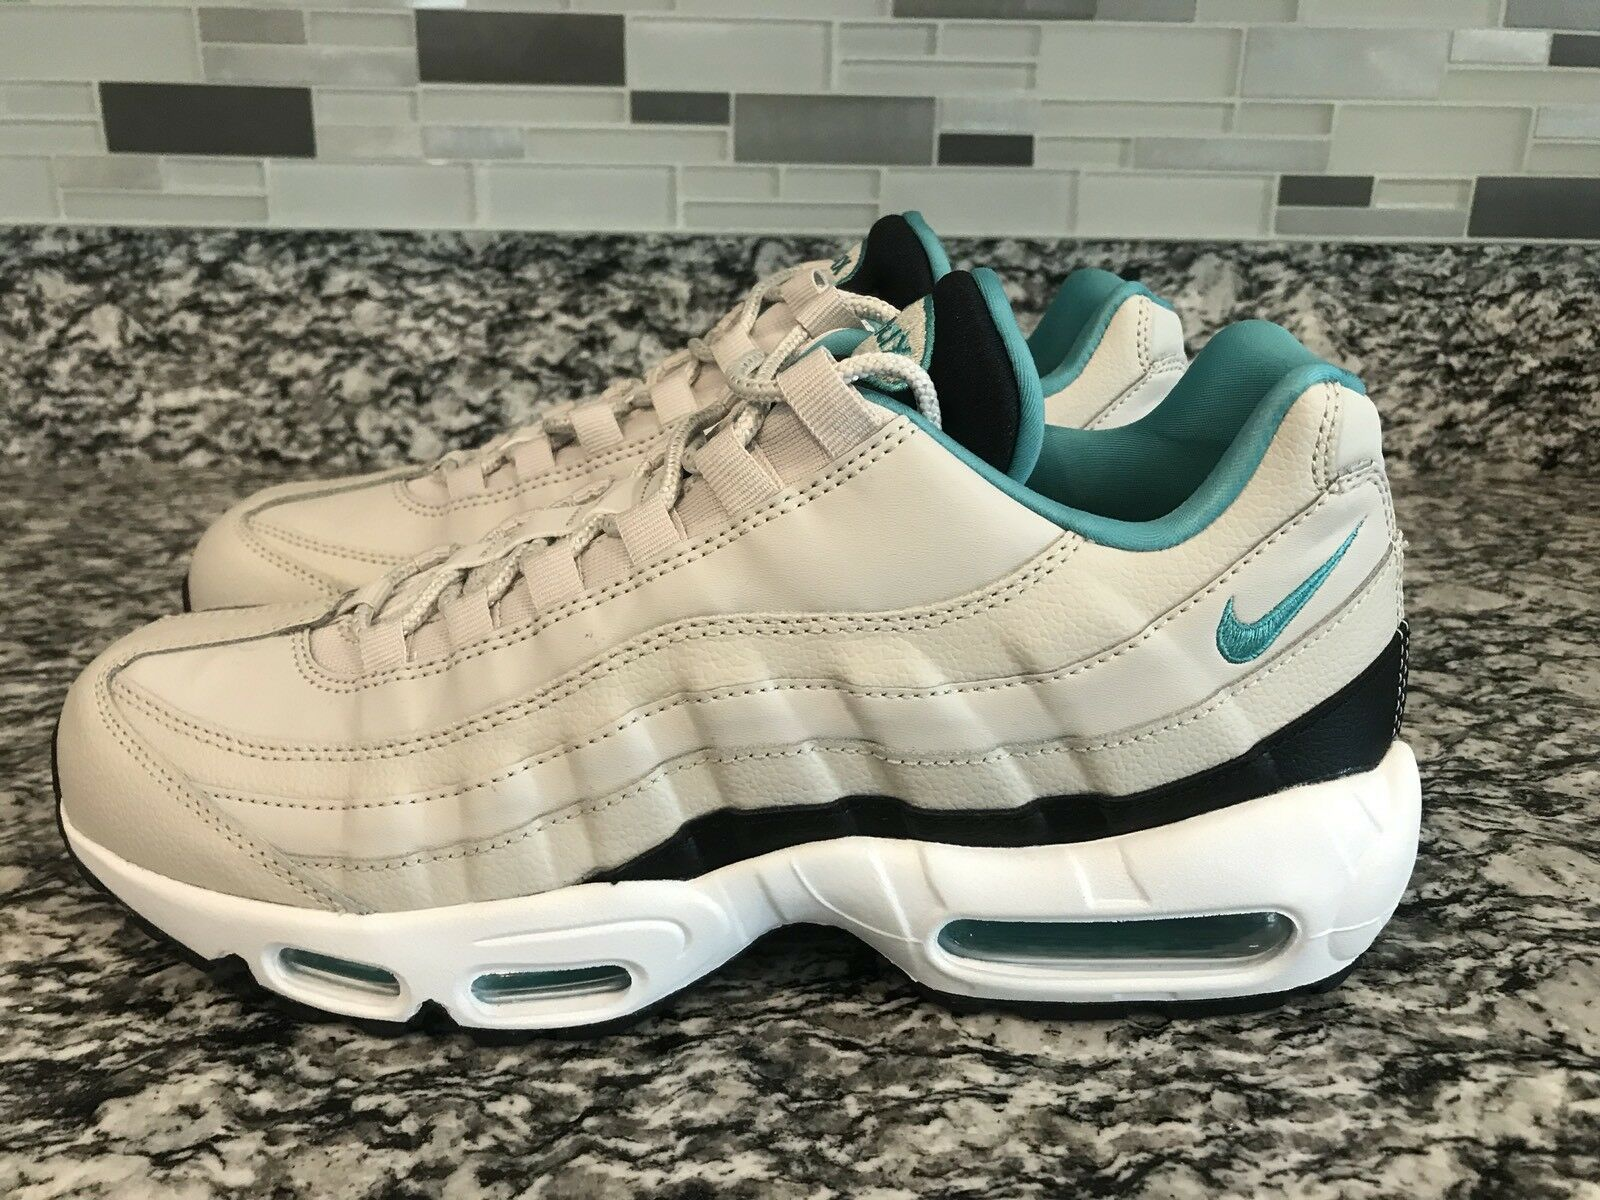 5243f969be New Men's Sz 9 Air Max 95 Essential Light Bone Sport Turqouise 749766-027